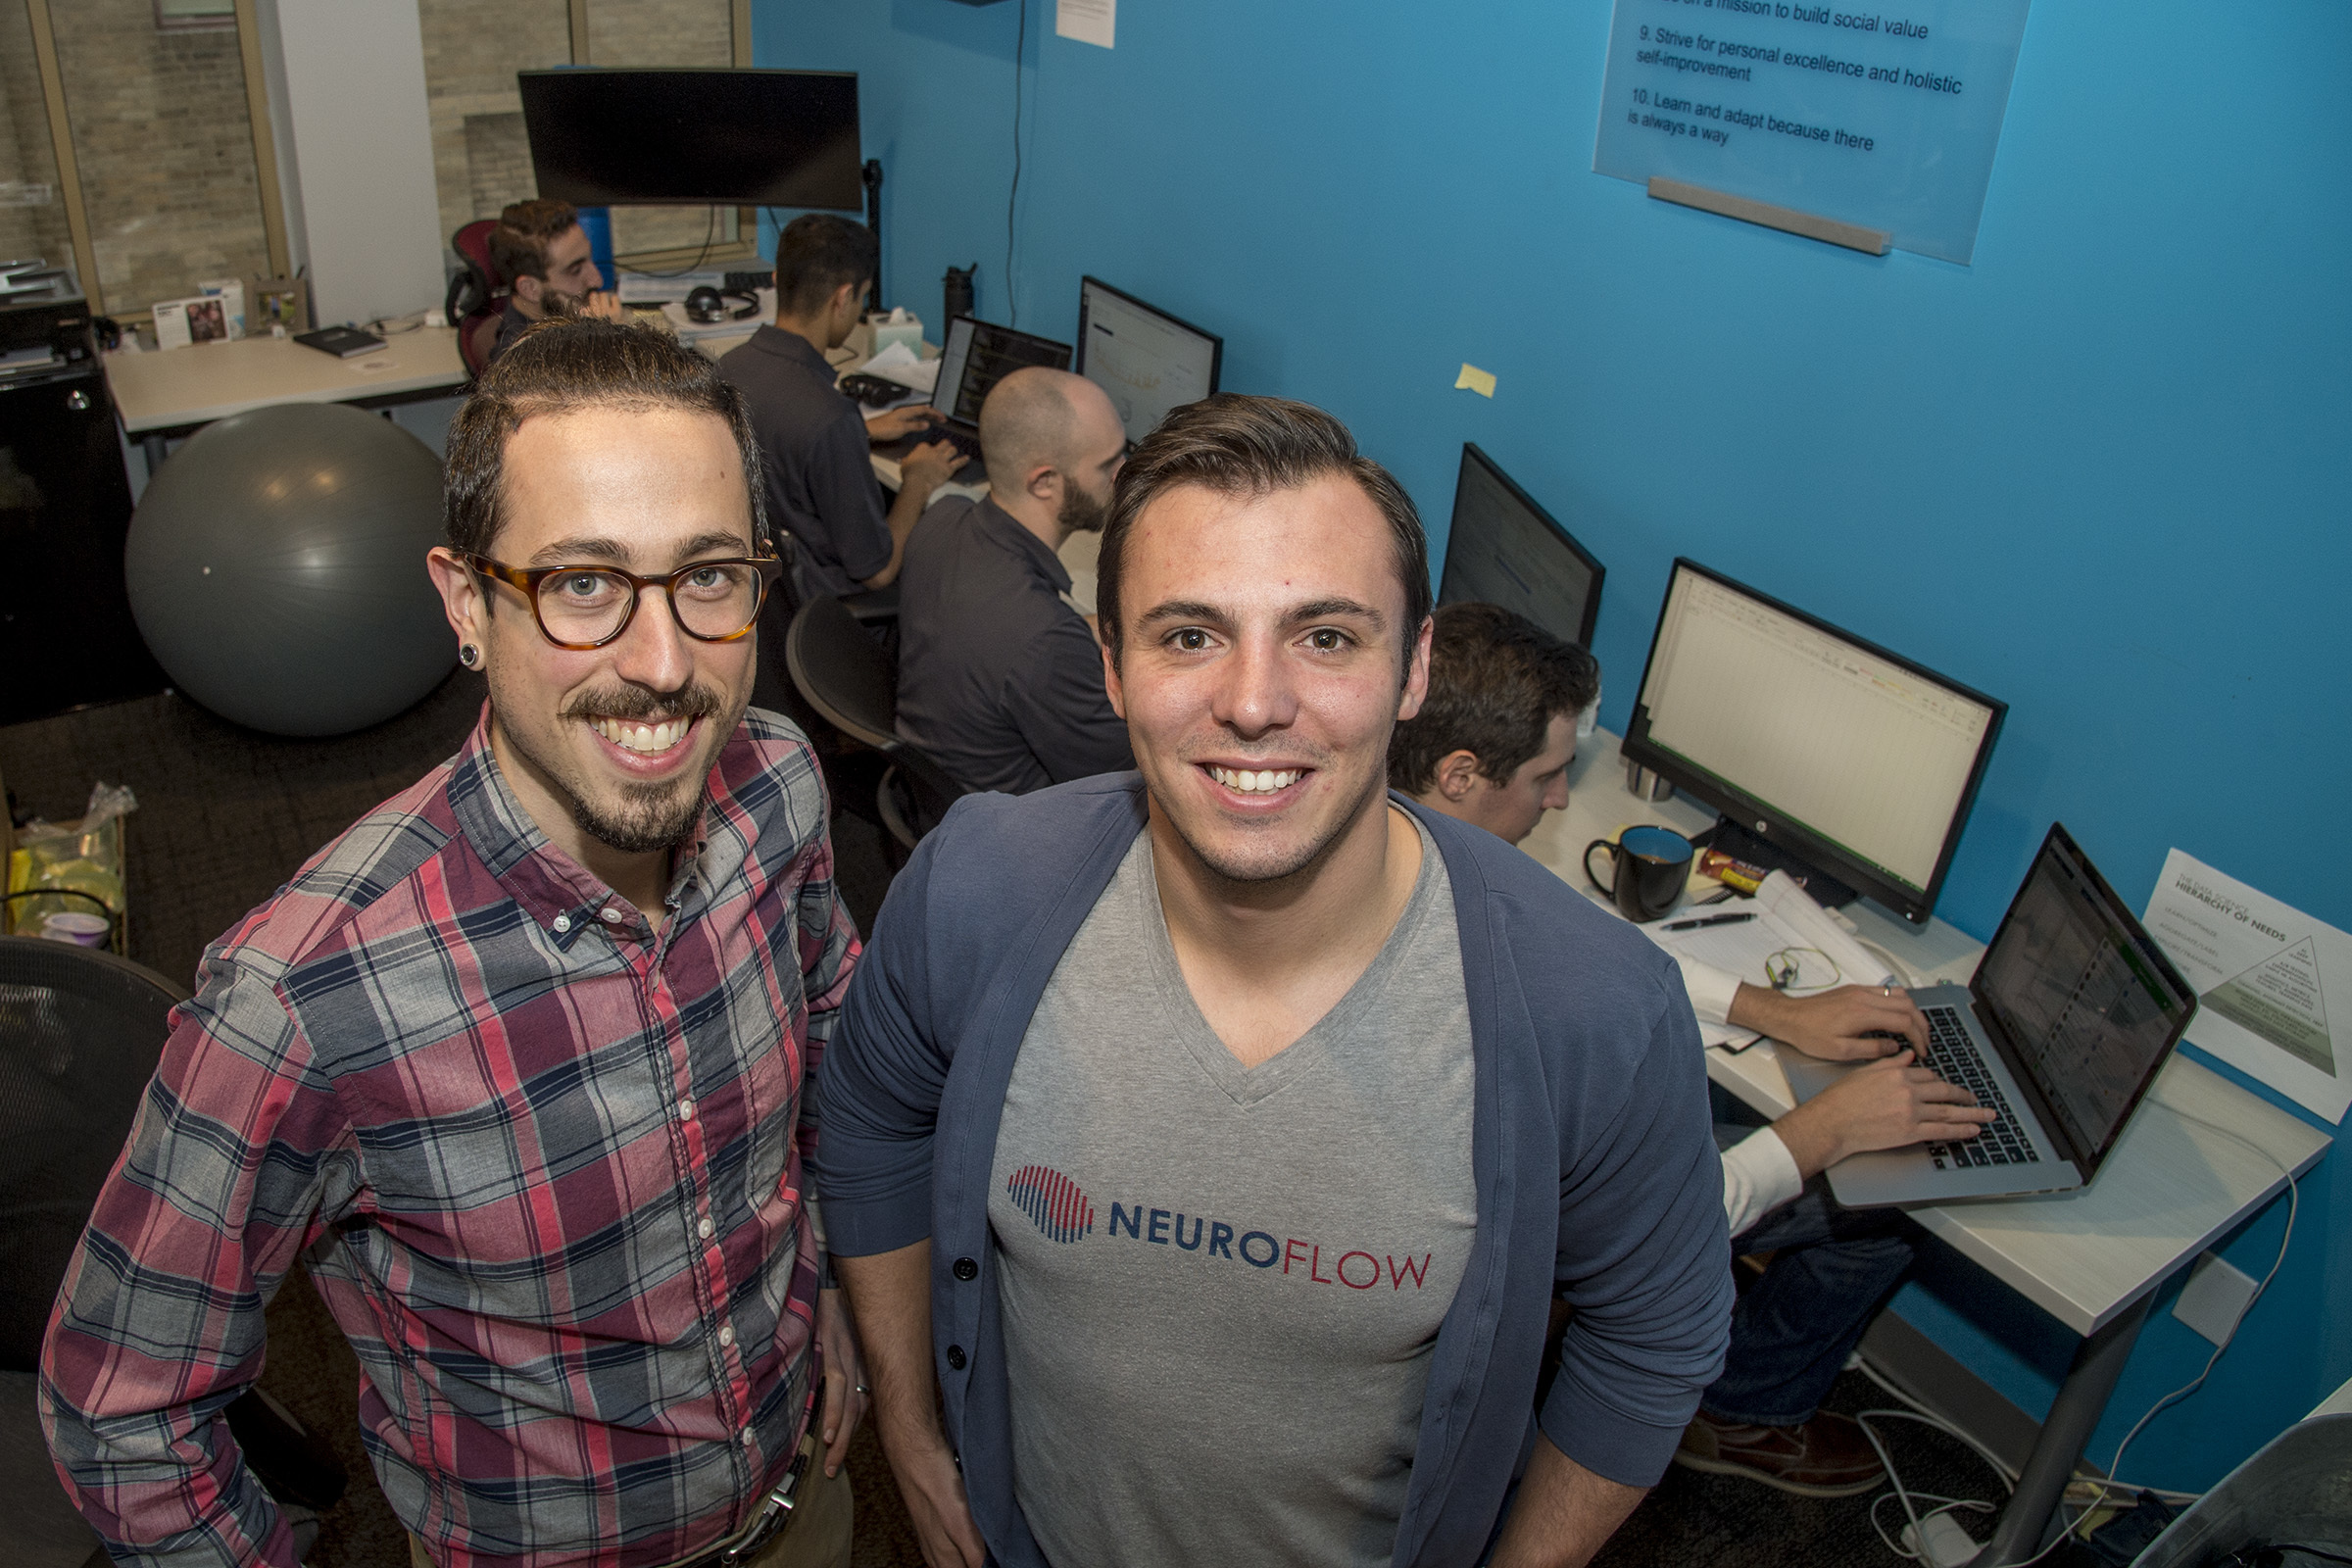 NeuroFlow cofounders Adam Pardes (left) and Christopher Molaro were pursuing advanced degrees at the University of Pennsylvania when they founded the company in April 2016.